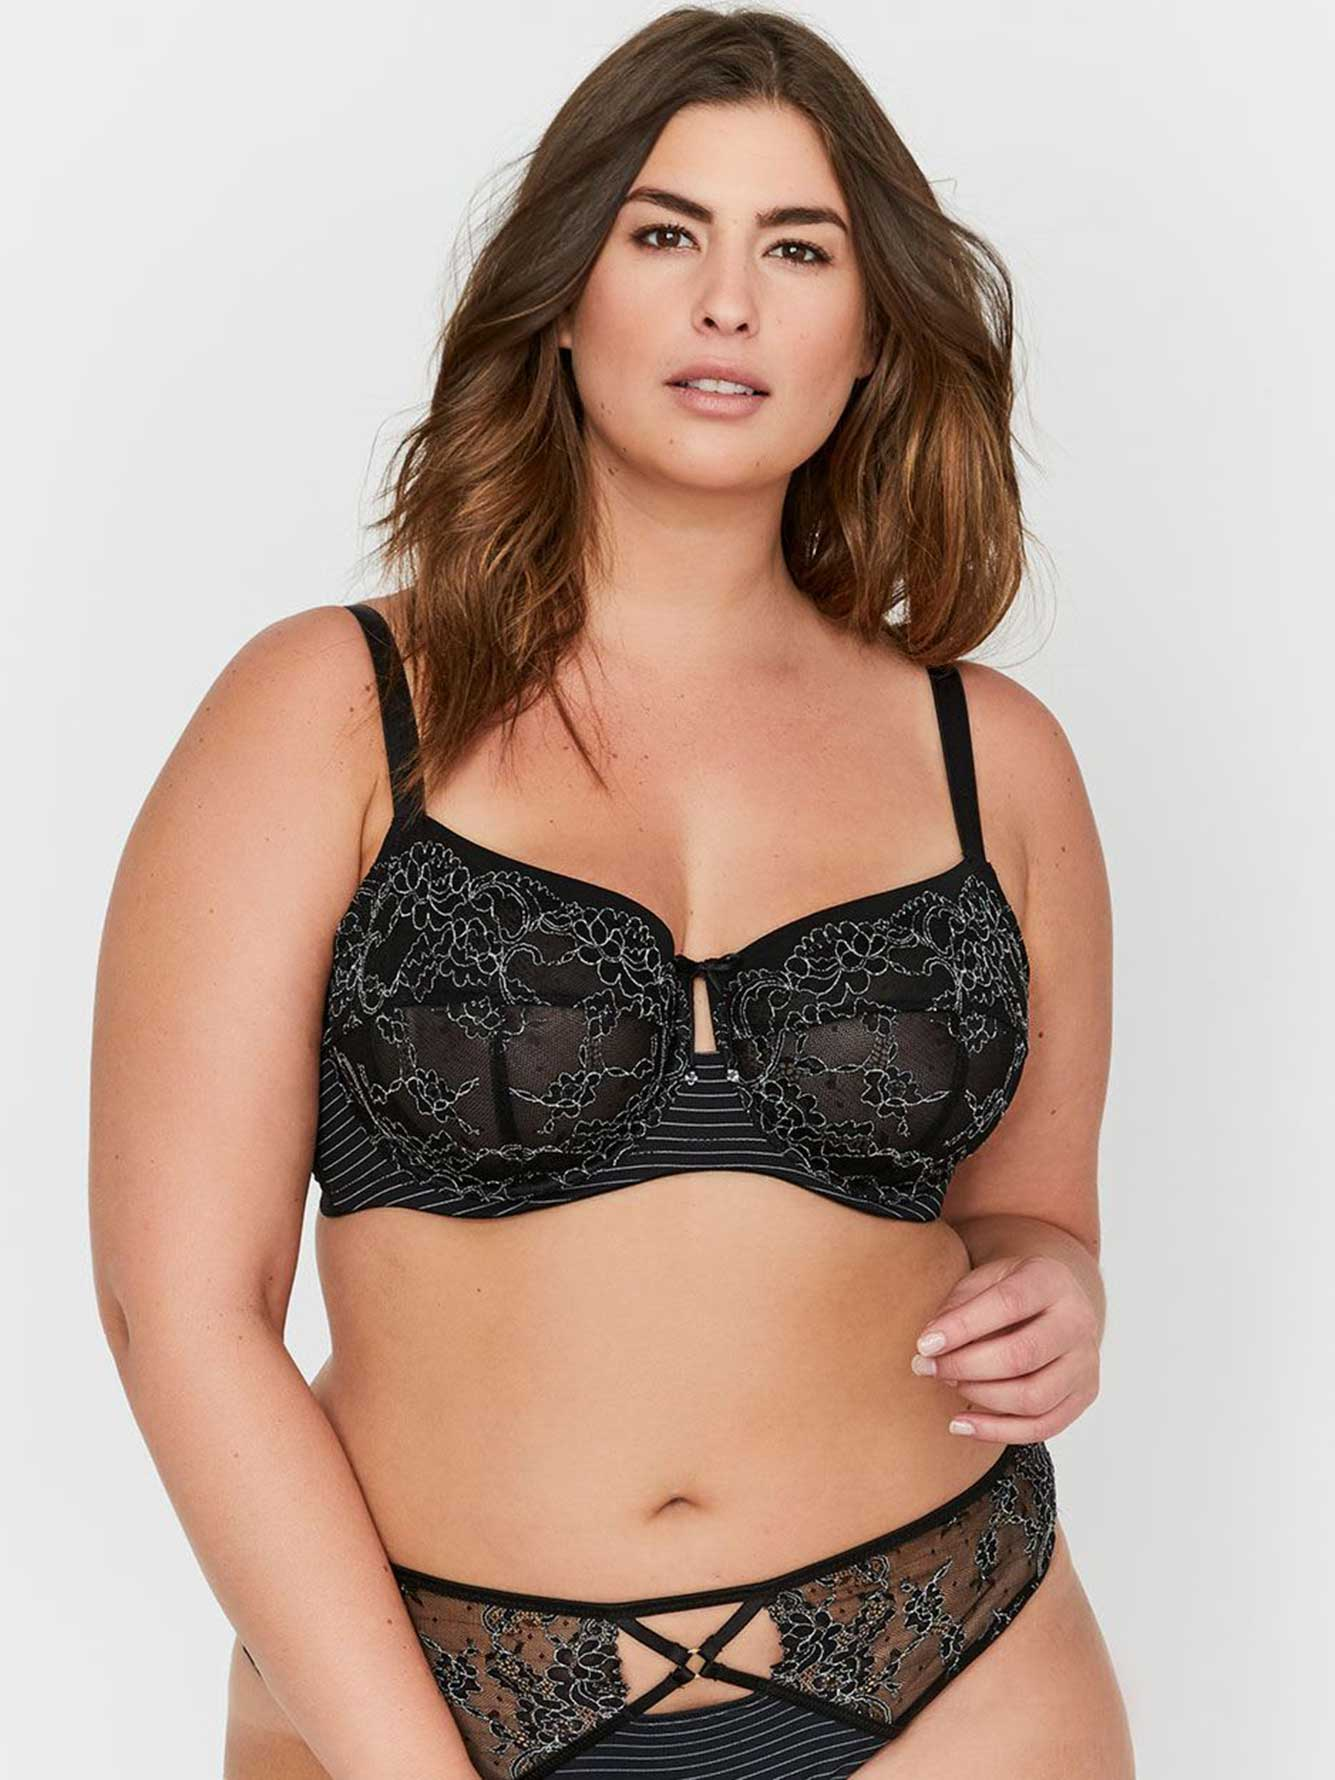 Ashley Graham Seamed Fatal Attraction Unlined Bra, Sizes G & H